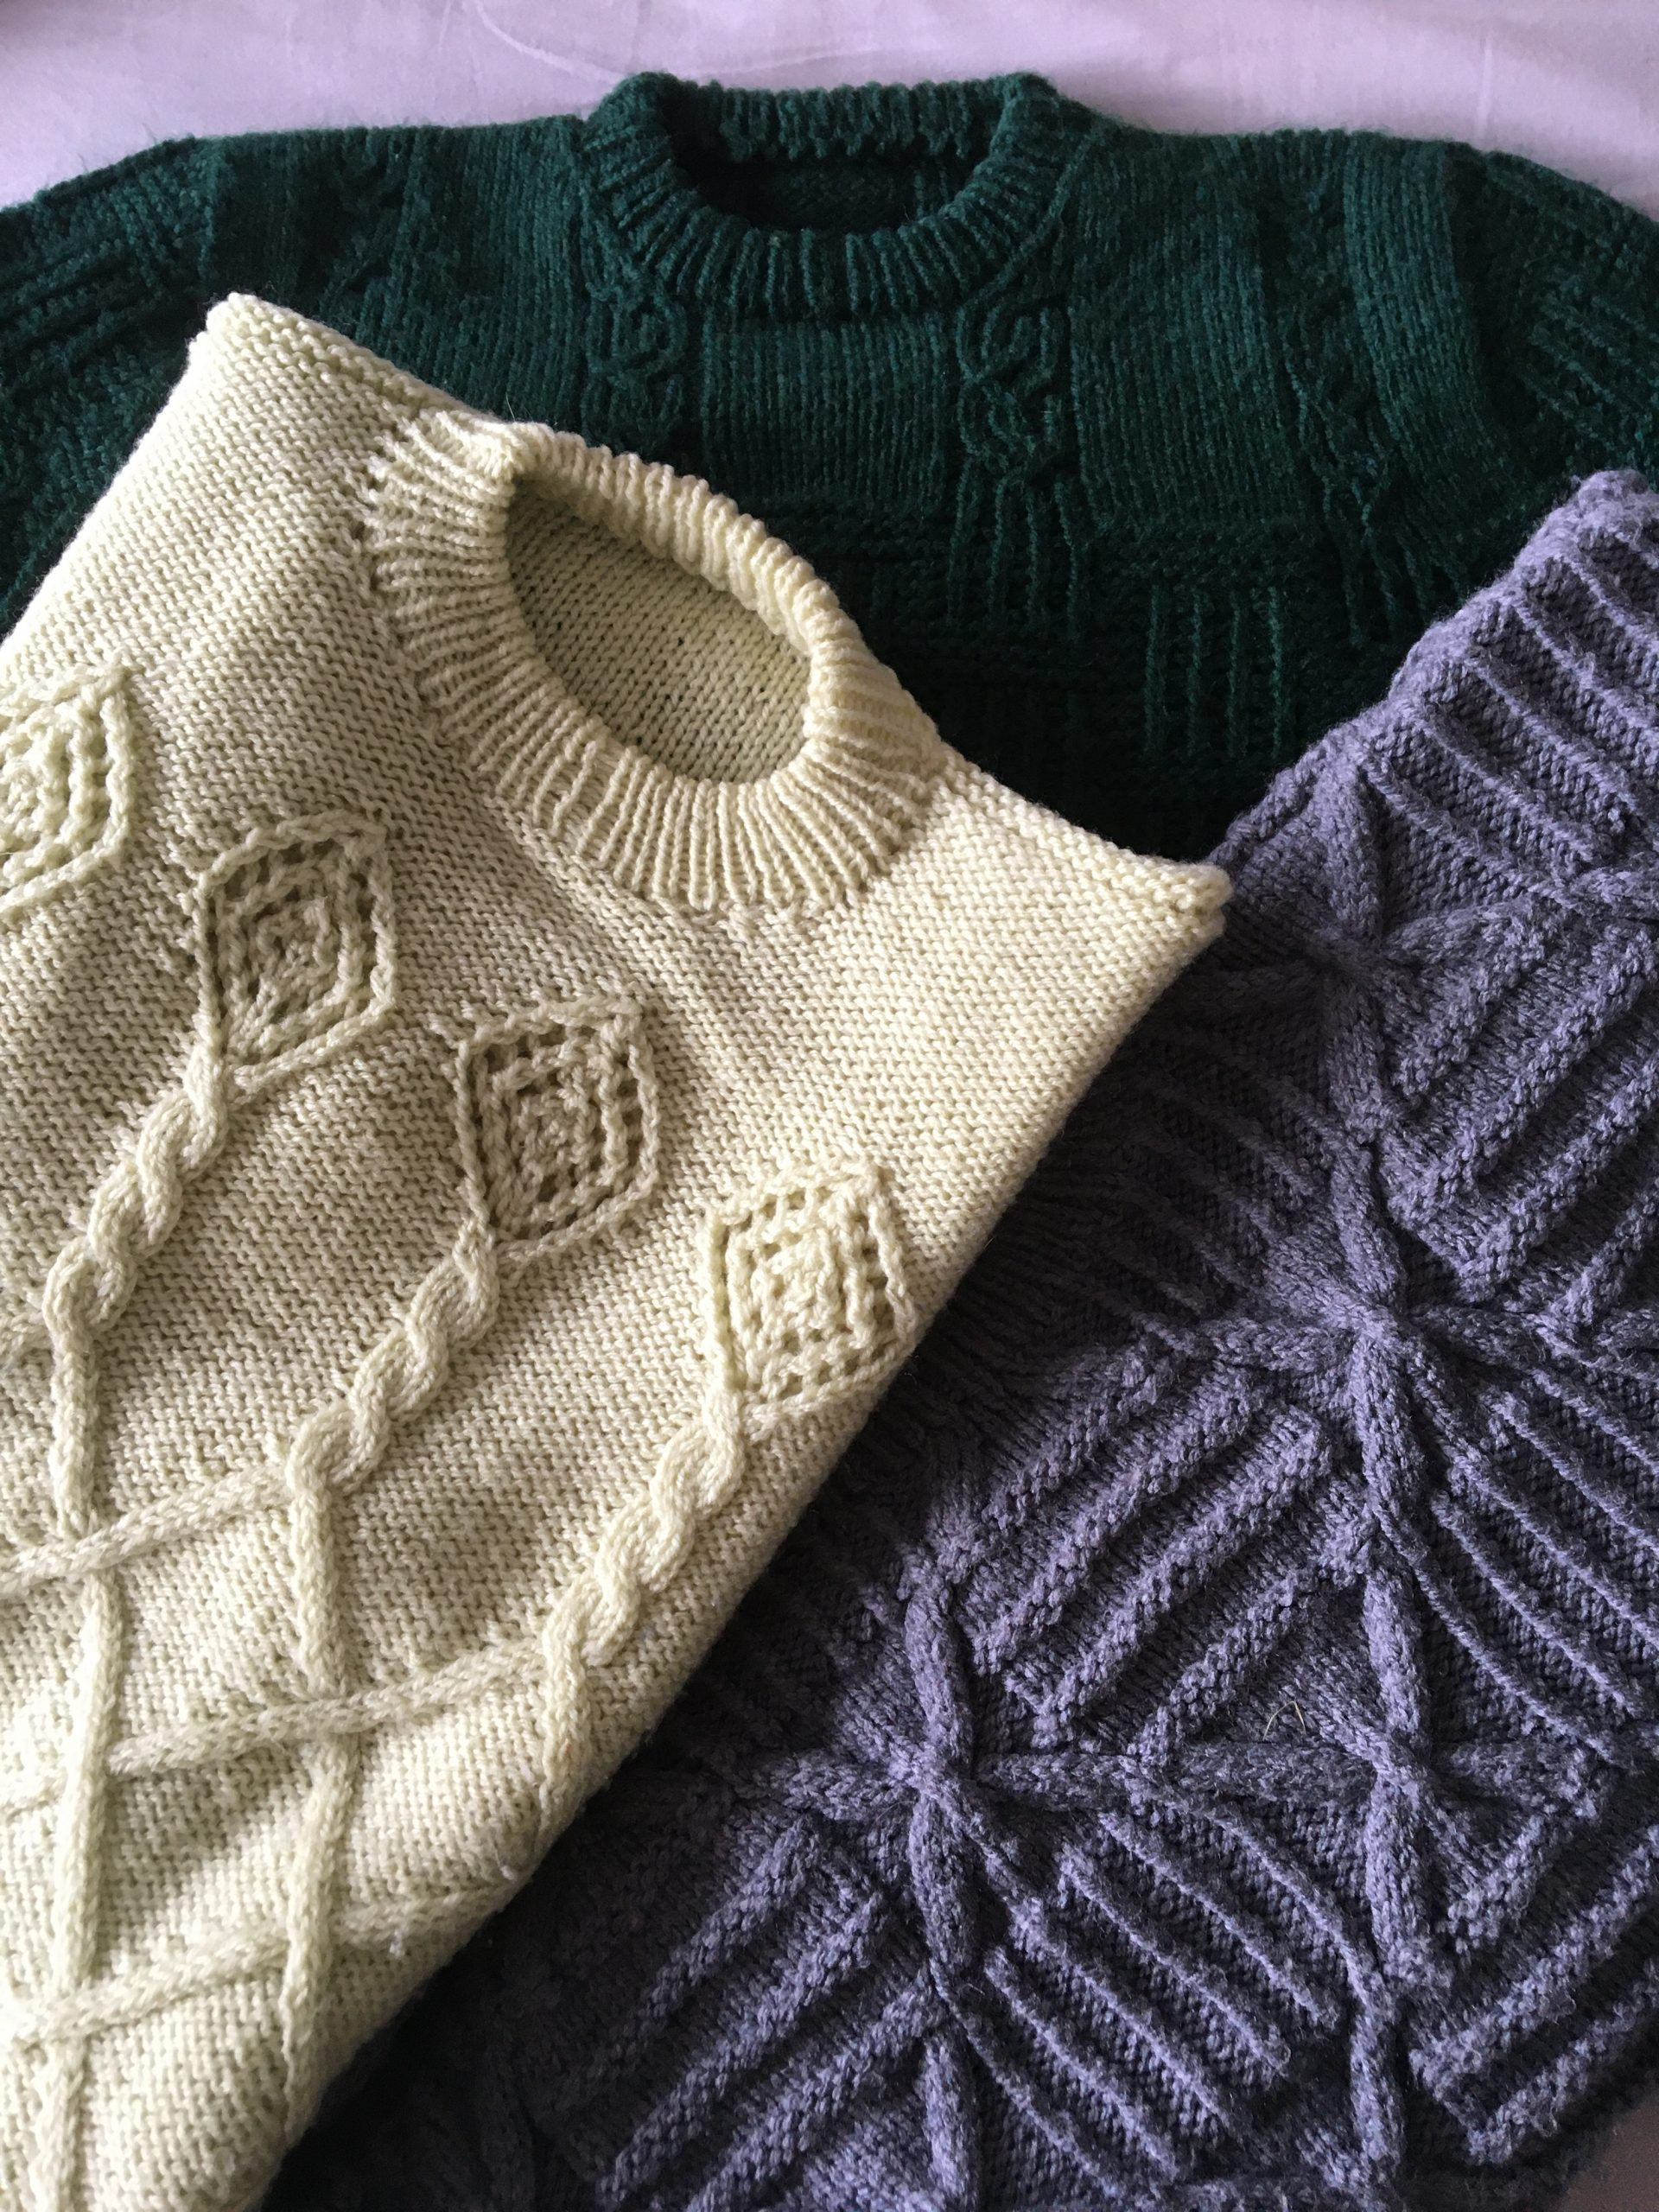 Knitting textures